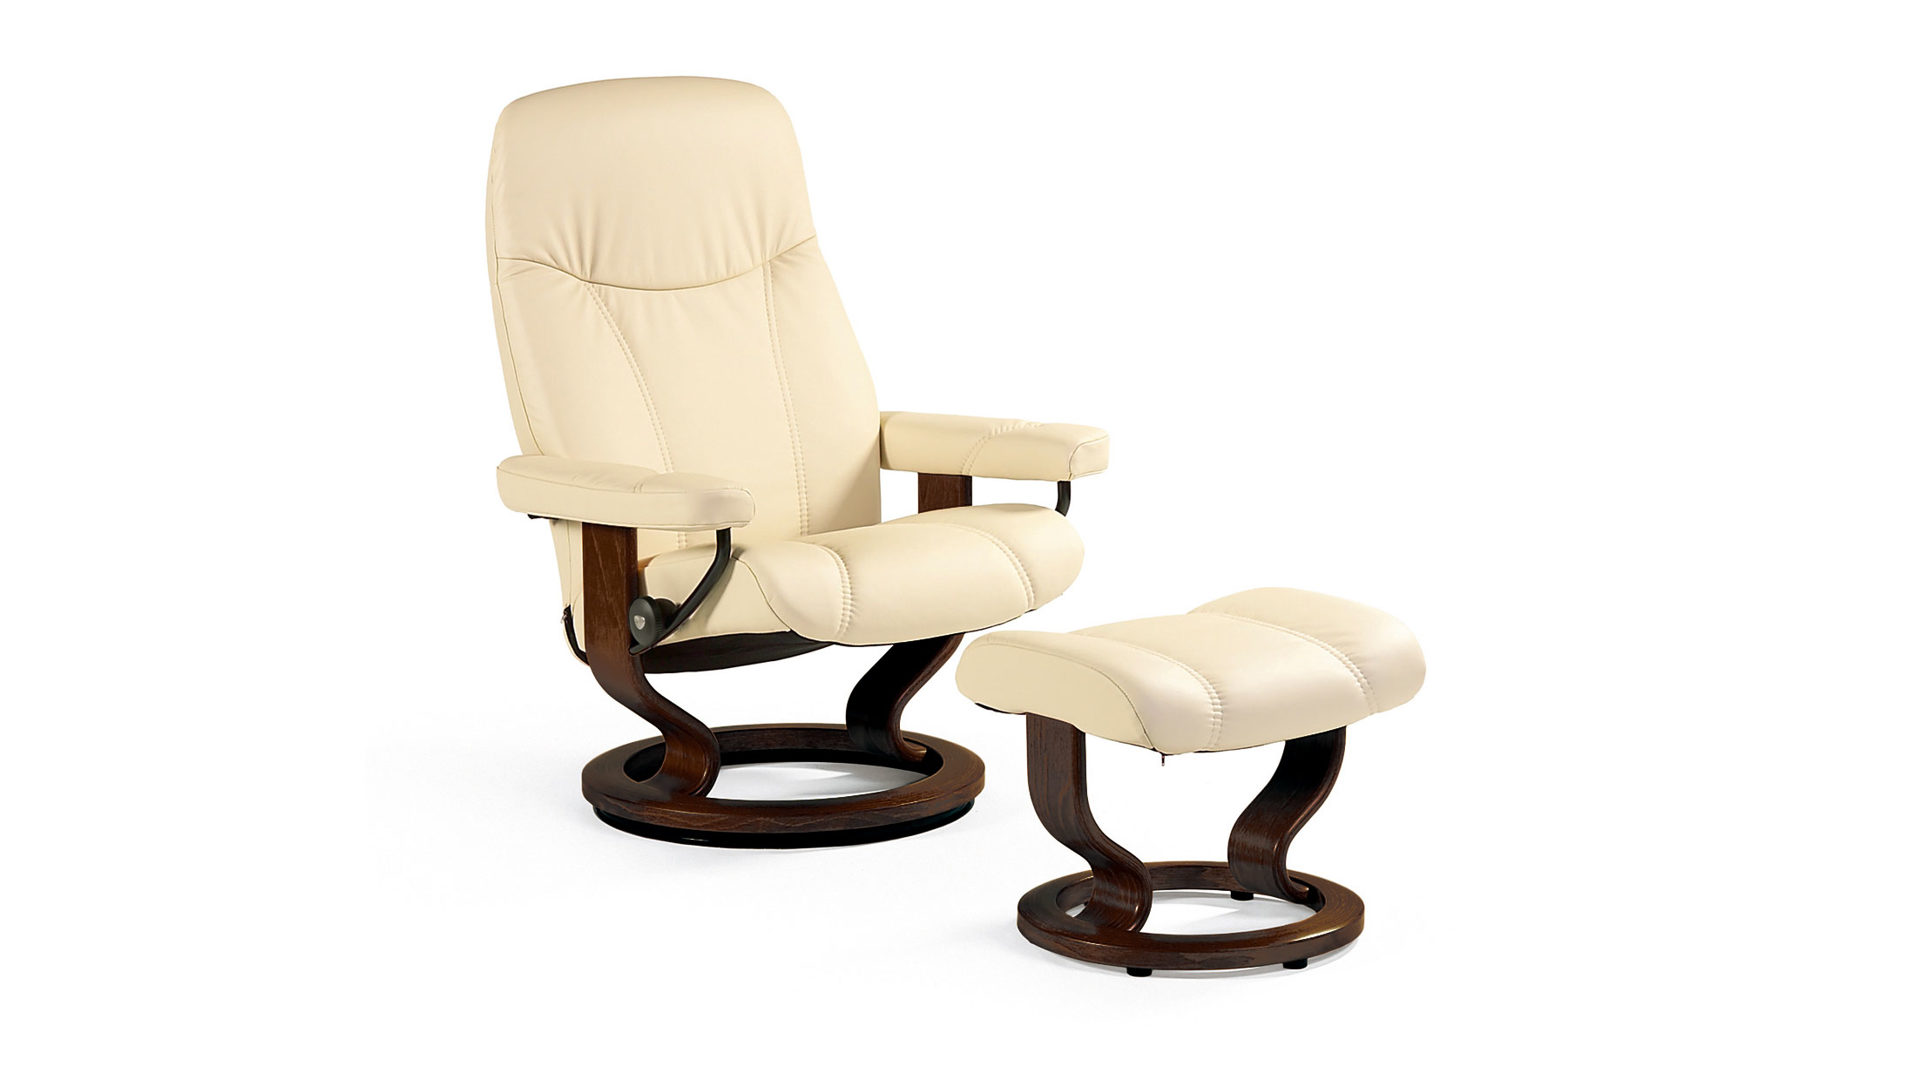 Relaxsessel Stressless Ohne Hocker Hocker Gnstig Simple Gallery Of Relax Sessel Relaxsessel